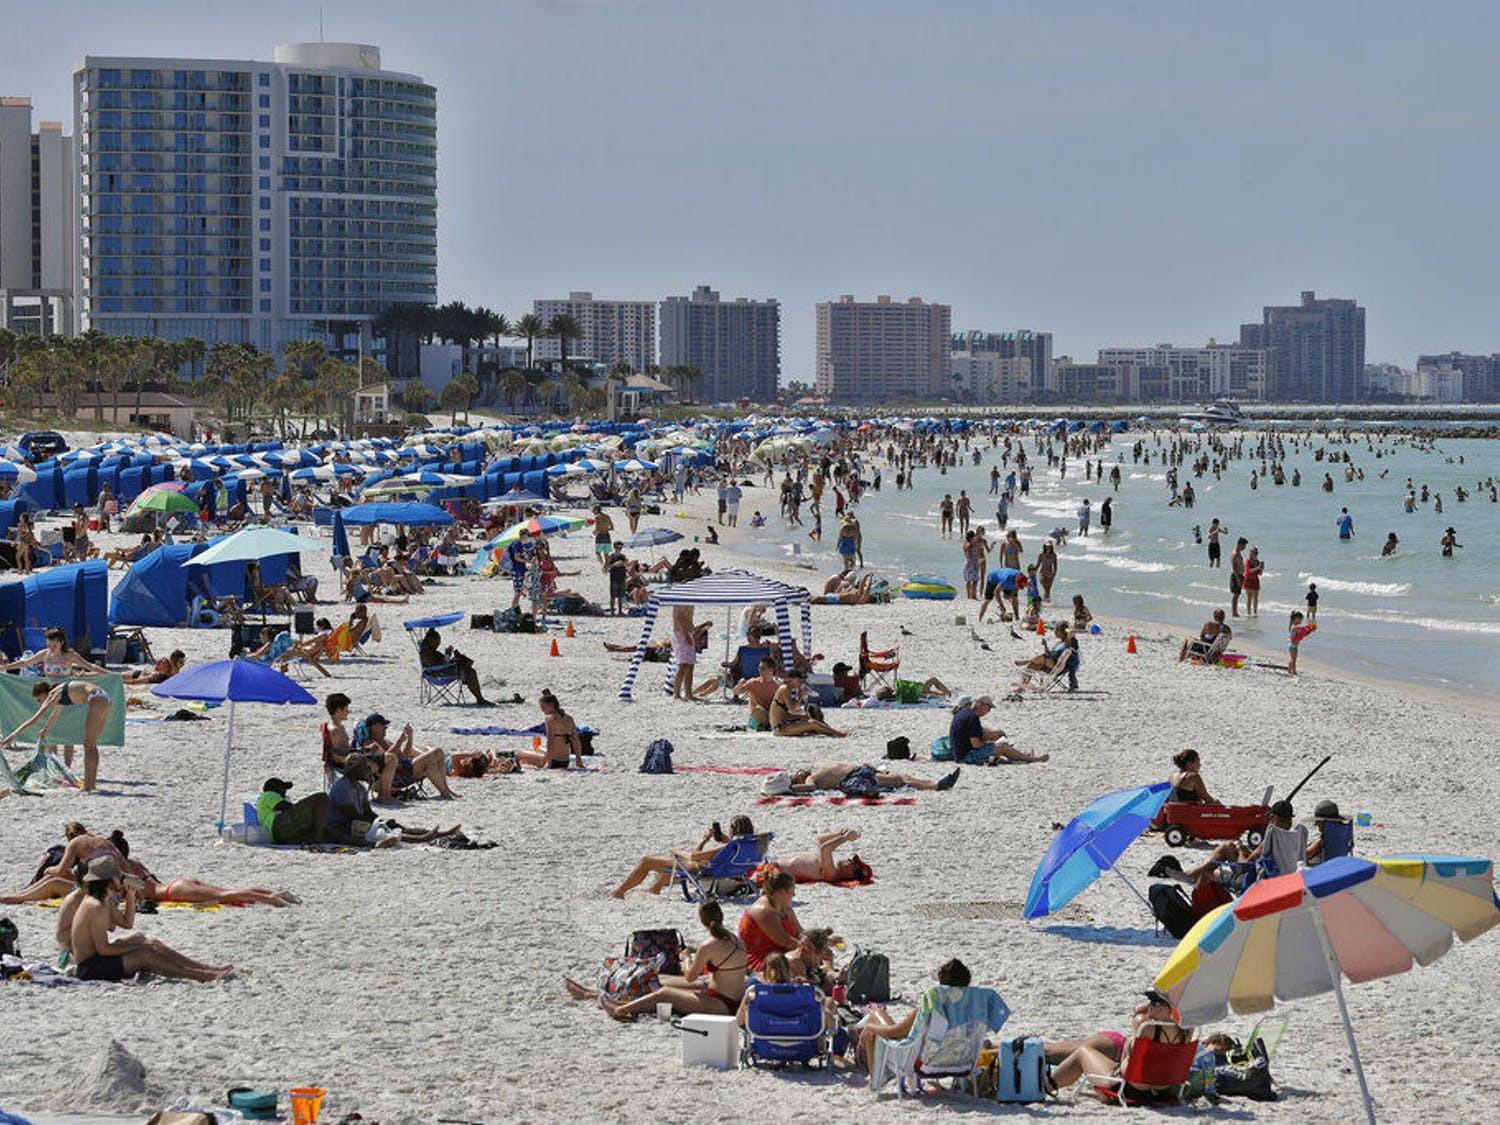 Visitors enjoy Clearwater Beach, Wednesday, March 18, 2020, in Clearwater Beach, Fla. Beachgoers are trying to keep a safe distance from each other by keeping a space of 6 to 10 feet (2 to 3 meters) between family groups to help protect from the spread of the coronavirus. (AP Photo/Chris O'Meara)